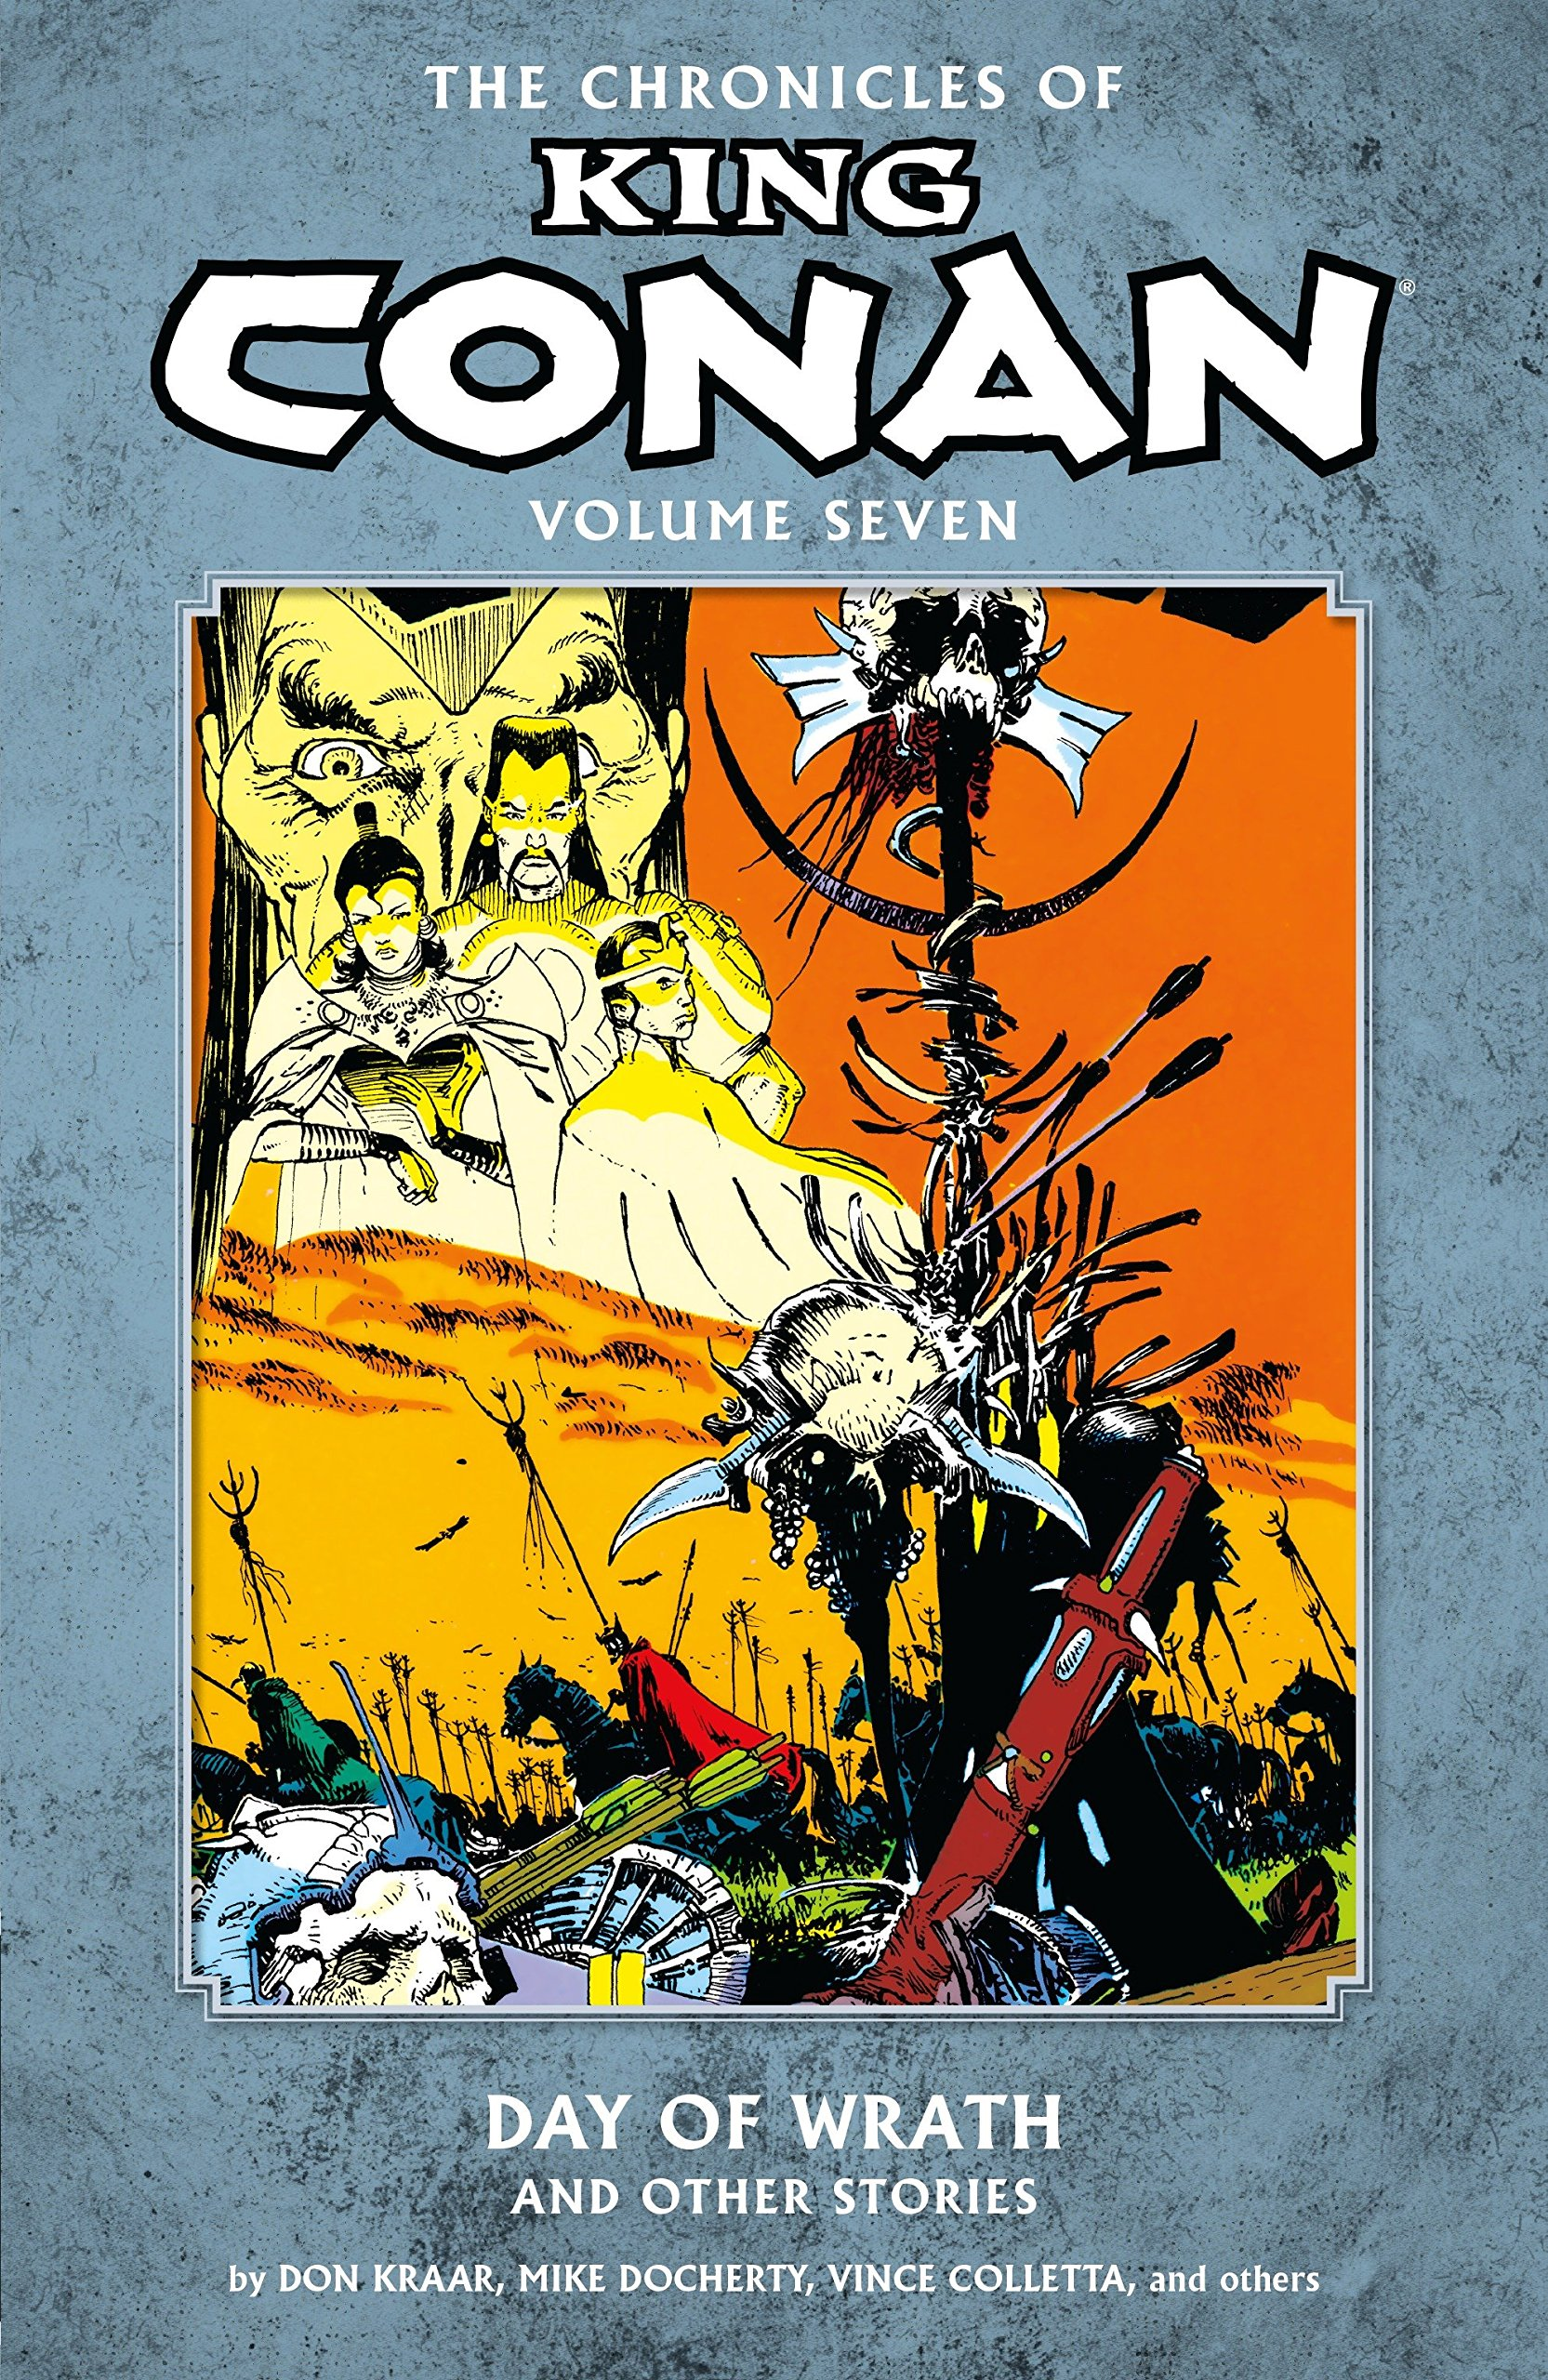 Download Chronicles of King Conan Volume 7: Day of Wrath and Other Stories PDF